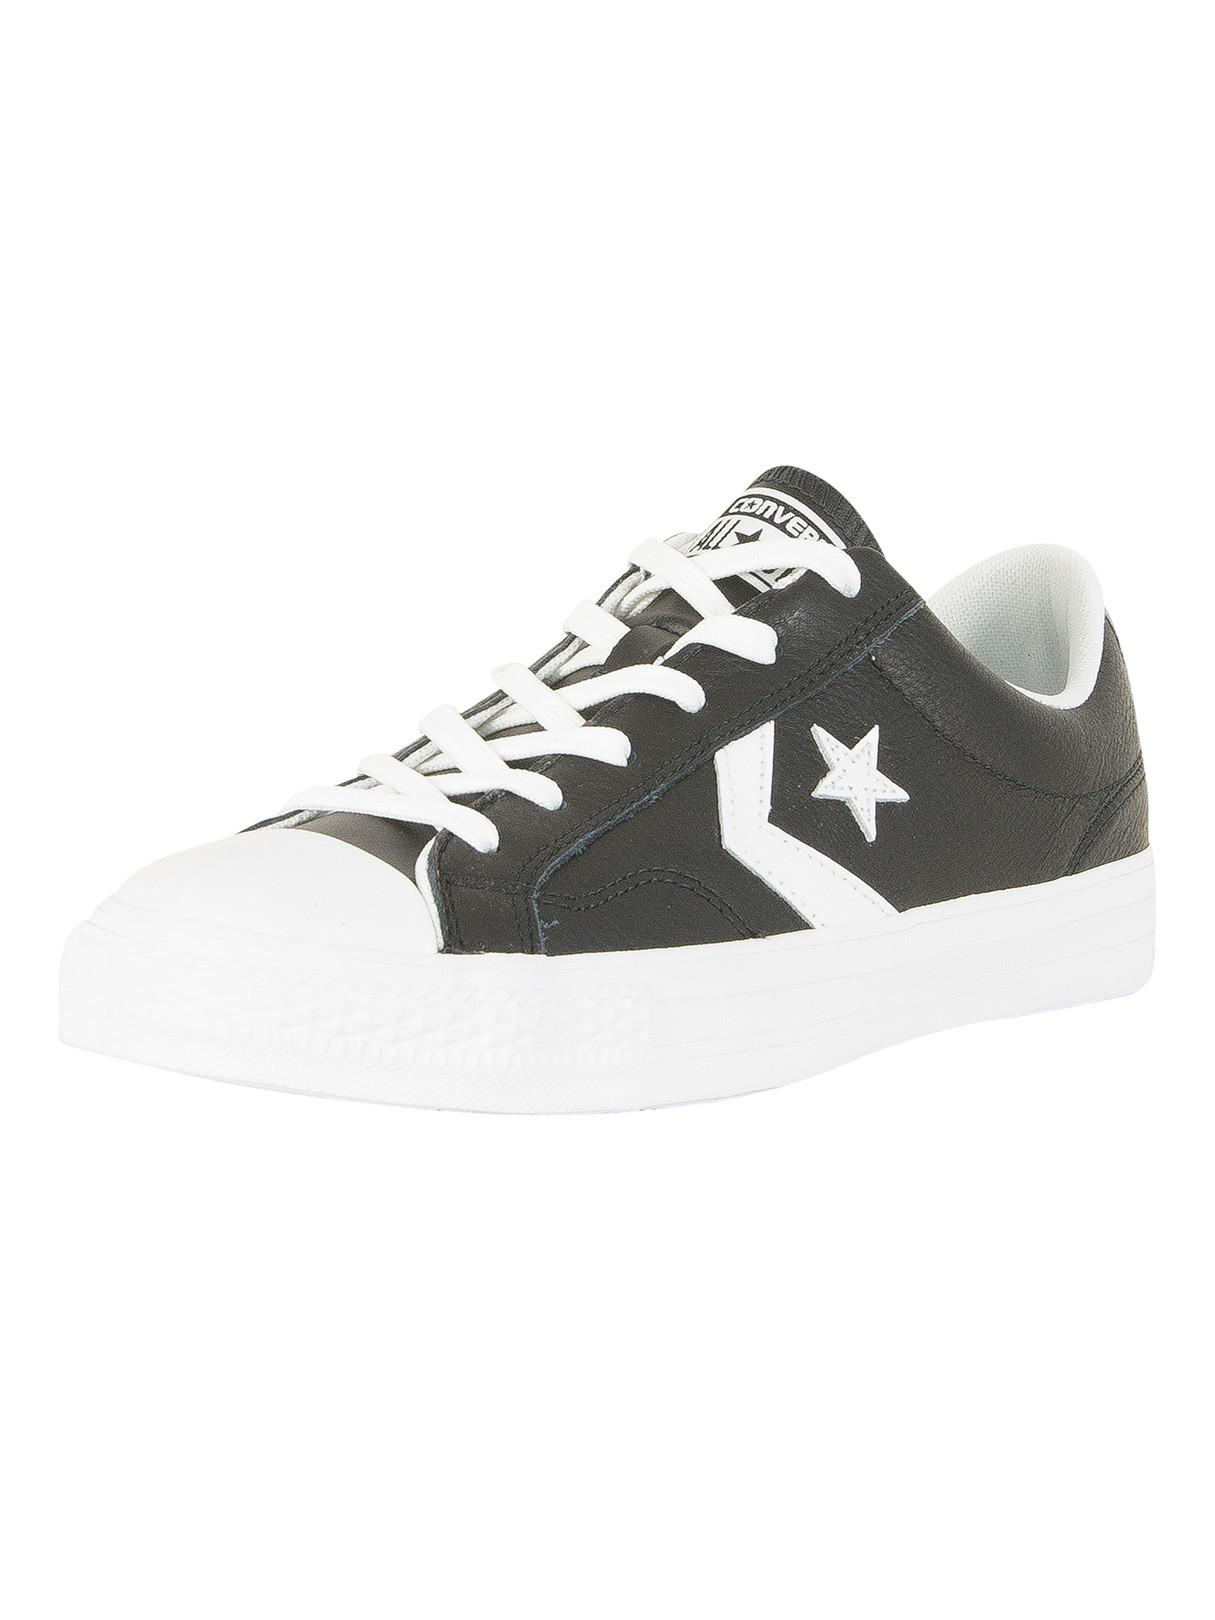 d34b5ac7610701 Converse Black white Star Player Ox Trainers in Black for Men - Lyst